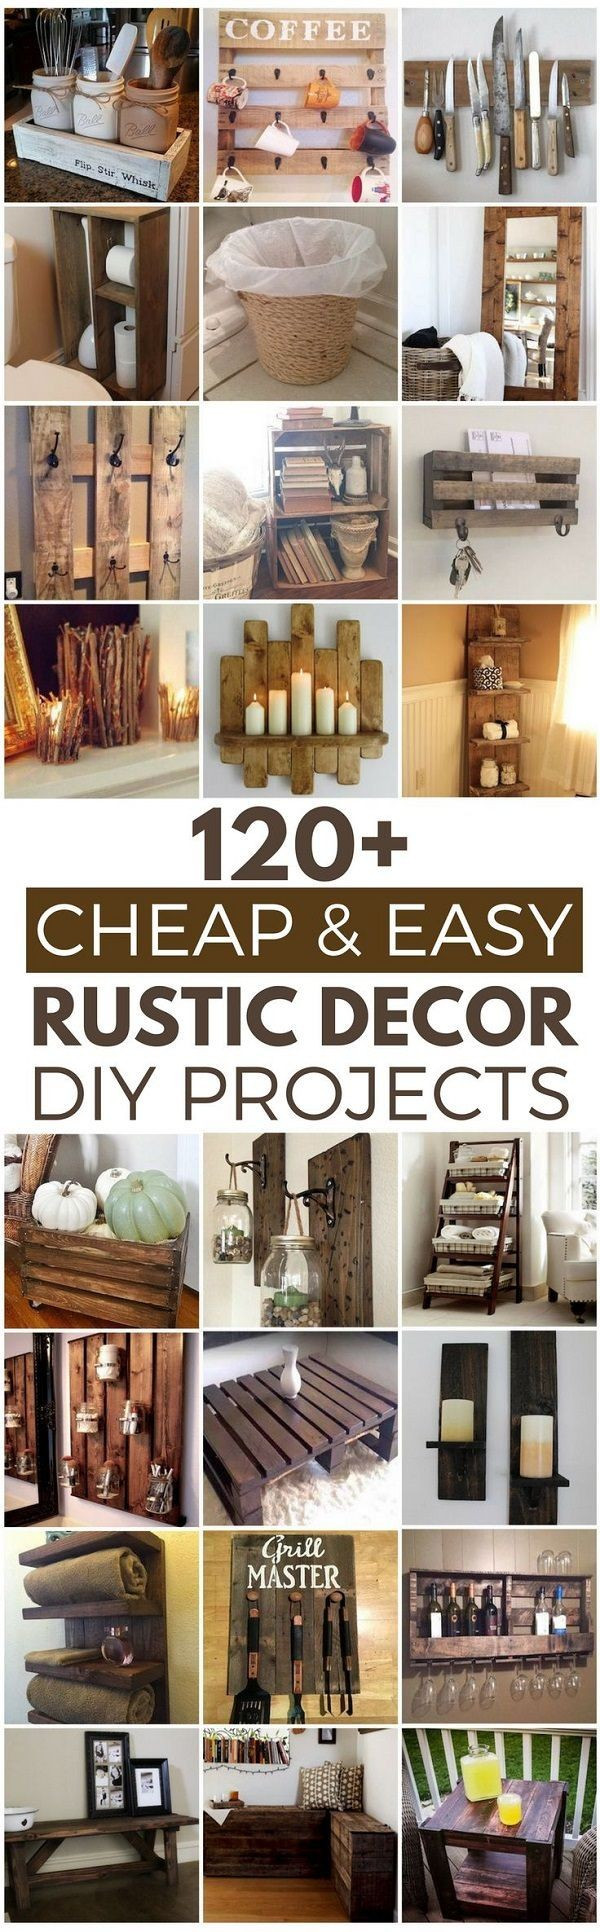 aqua vase filler of easy home decorating unique 15 cheap and easy diy vase filler ideas throughout easy home decorating beautiful 182 best home dacor on a bud images on pinterest of easy